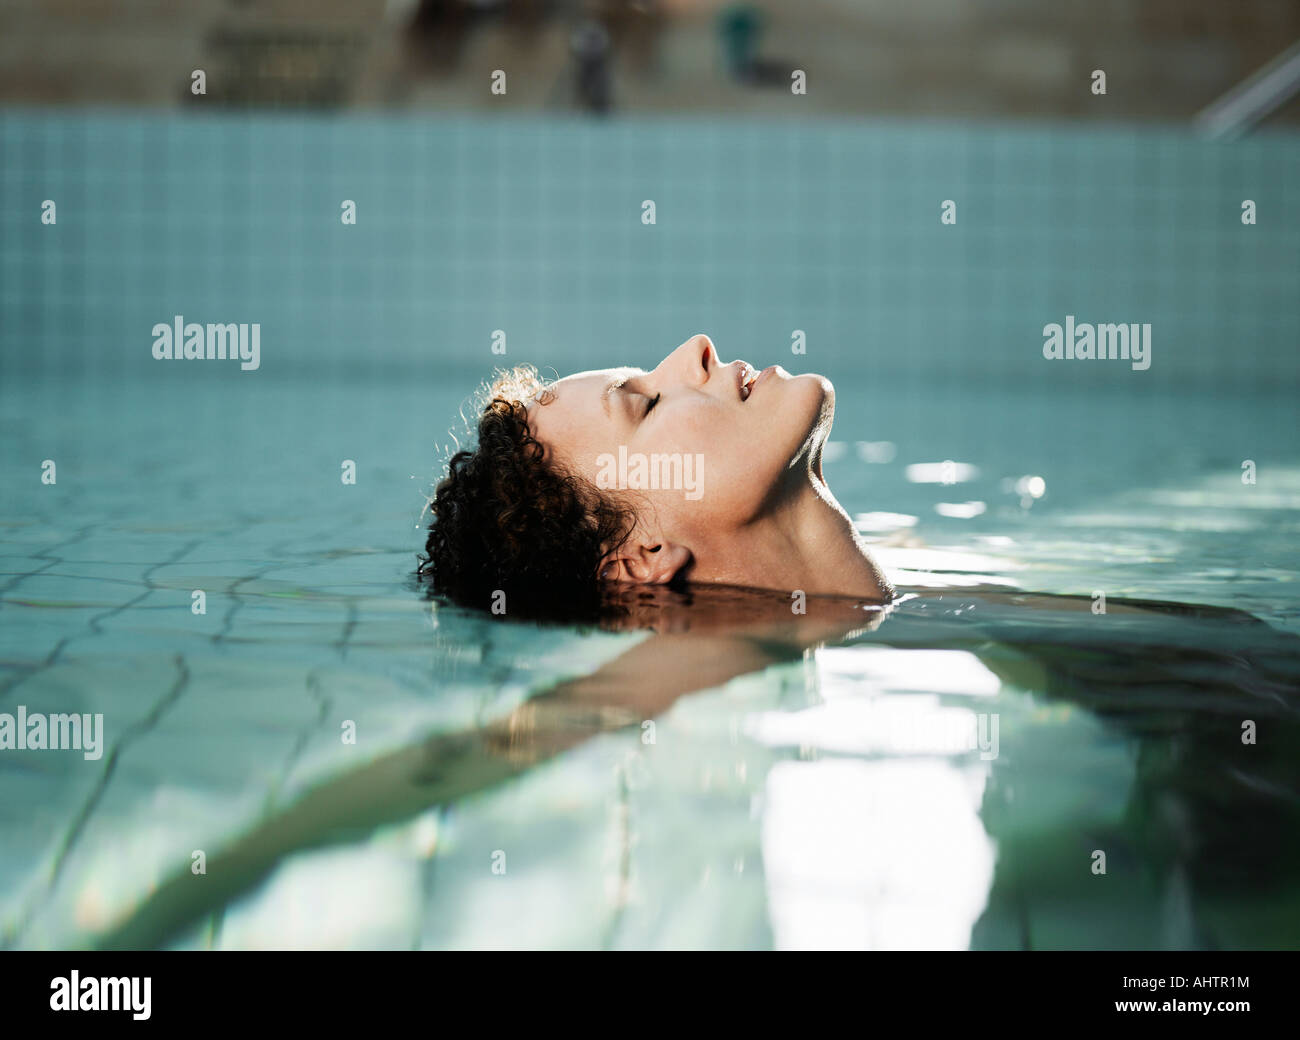 Woman lying in water, side view - Stock Image